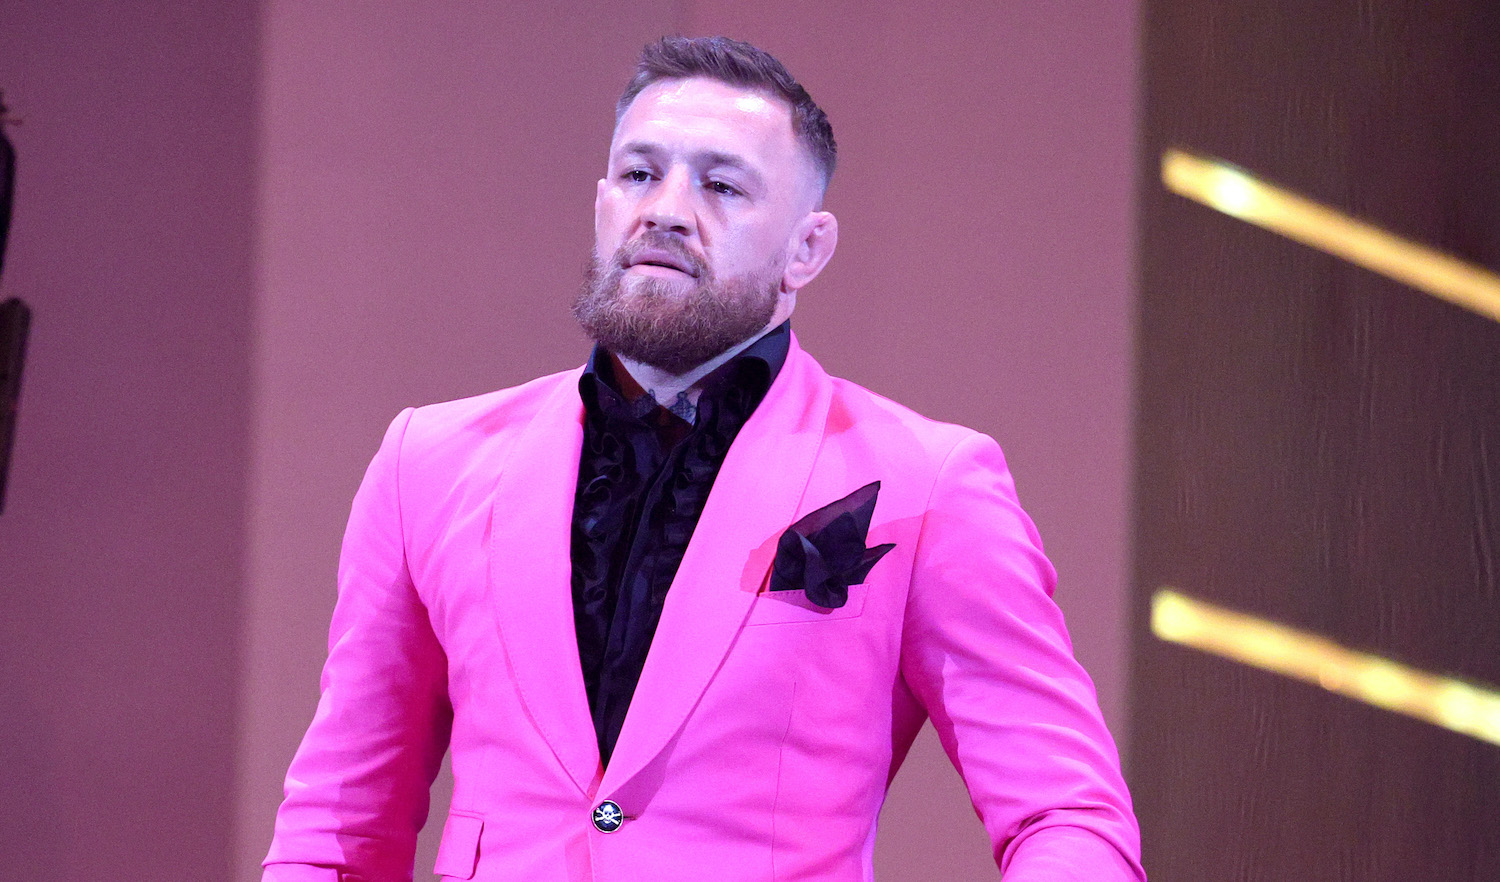 NEW YORK, NEW YORK - SEPTEMBER 12: Conor McGregor speaks onstage during the 2021 MTV Video Music Awards at Barclays Center on September 12, 2021 in the Brooklyn borough of New York City. (Photo by Theo Wargo/Getty Images for MTV/ViacomCBS)